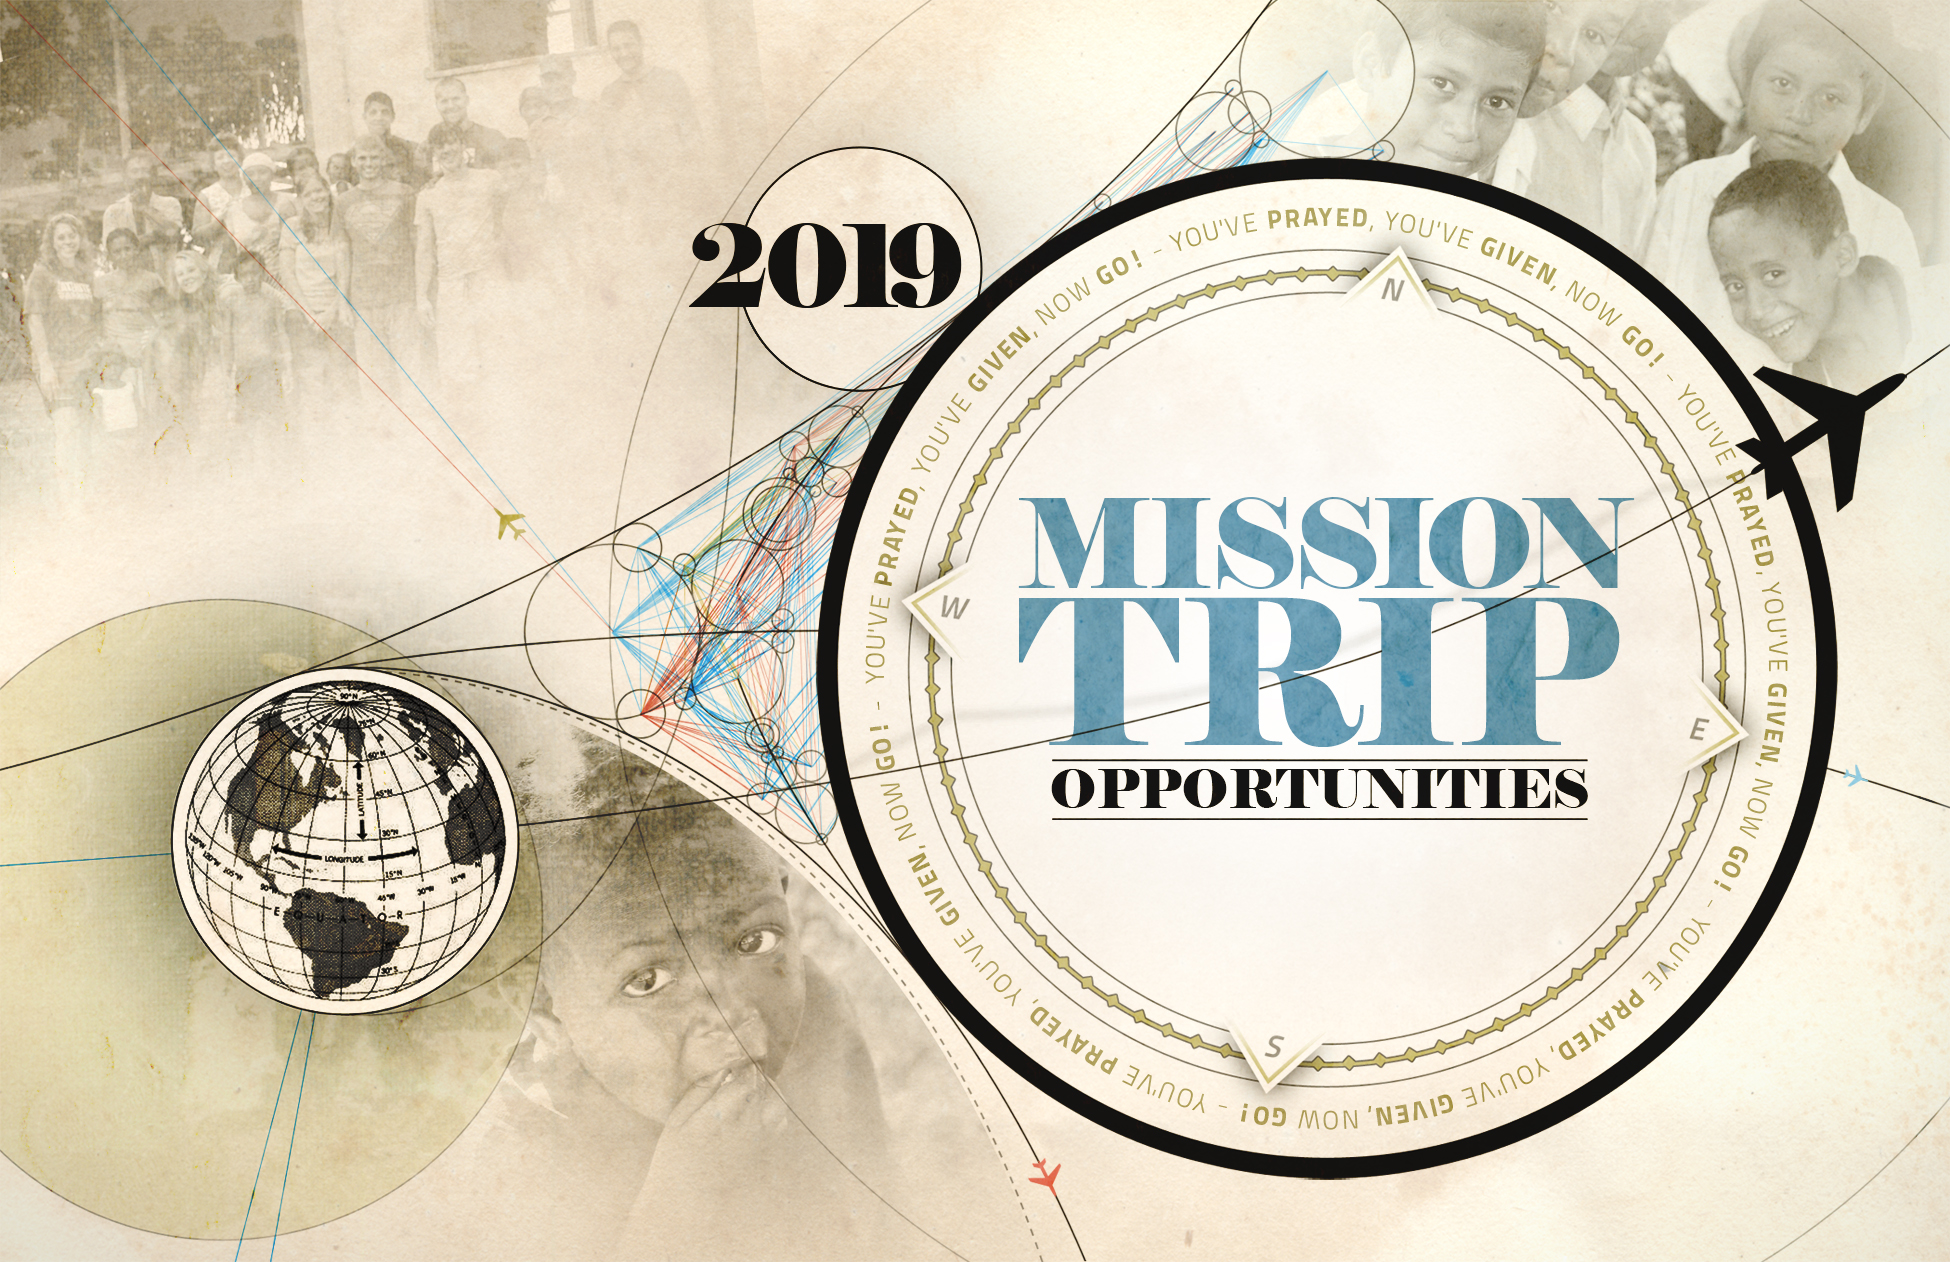 Missions Flier-front